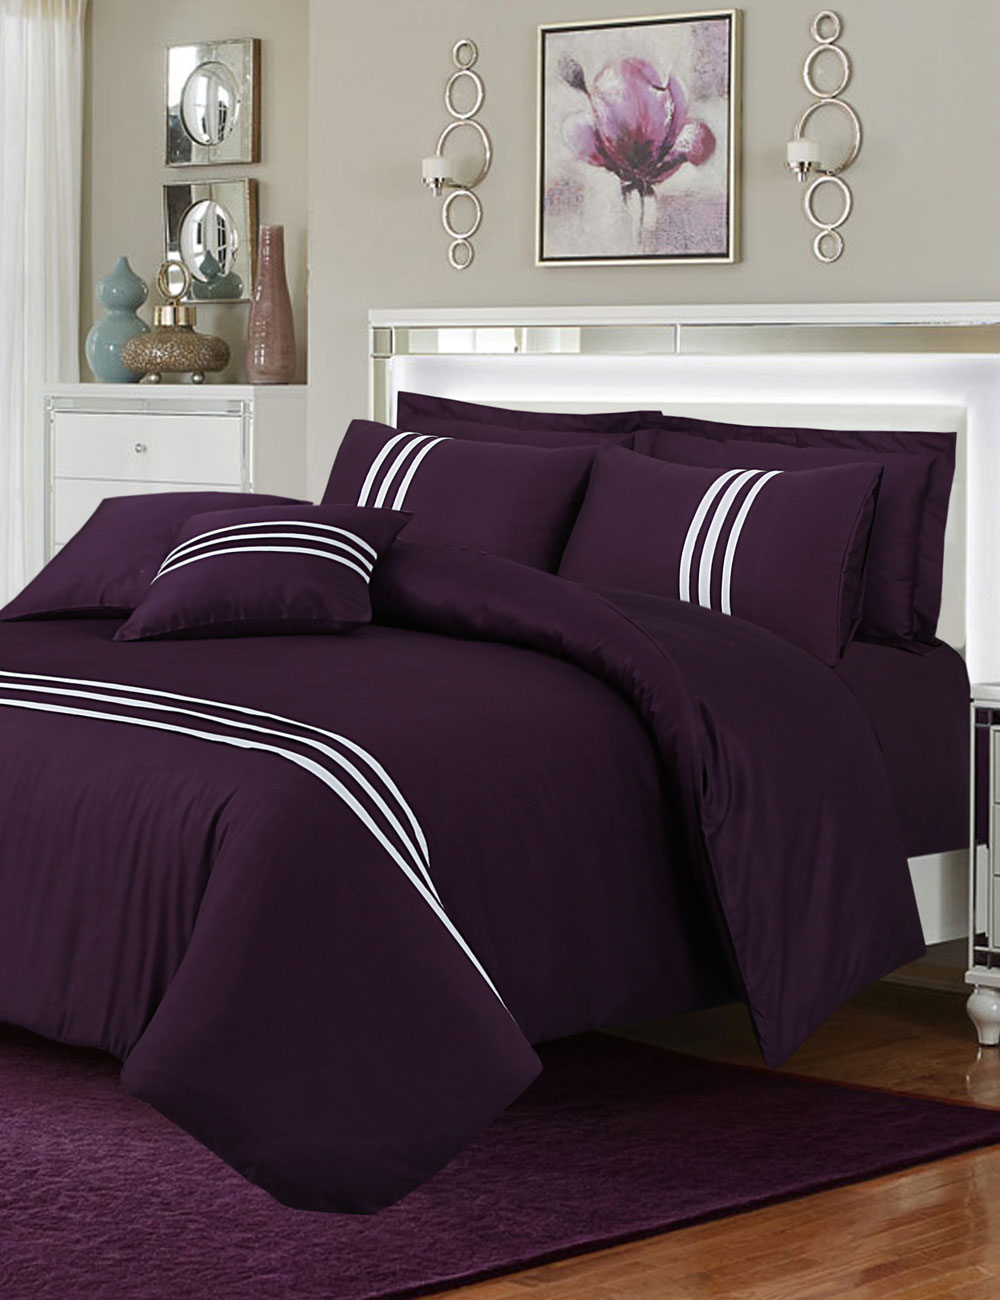 Plain Weave Duvet Cover Set – 8 Pieces : Magenta